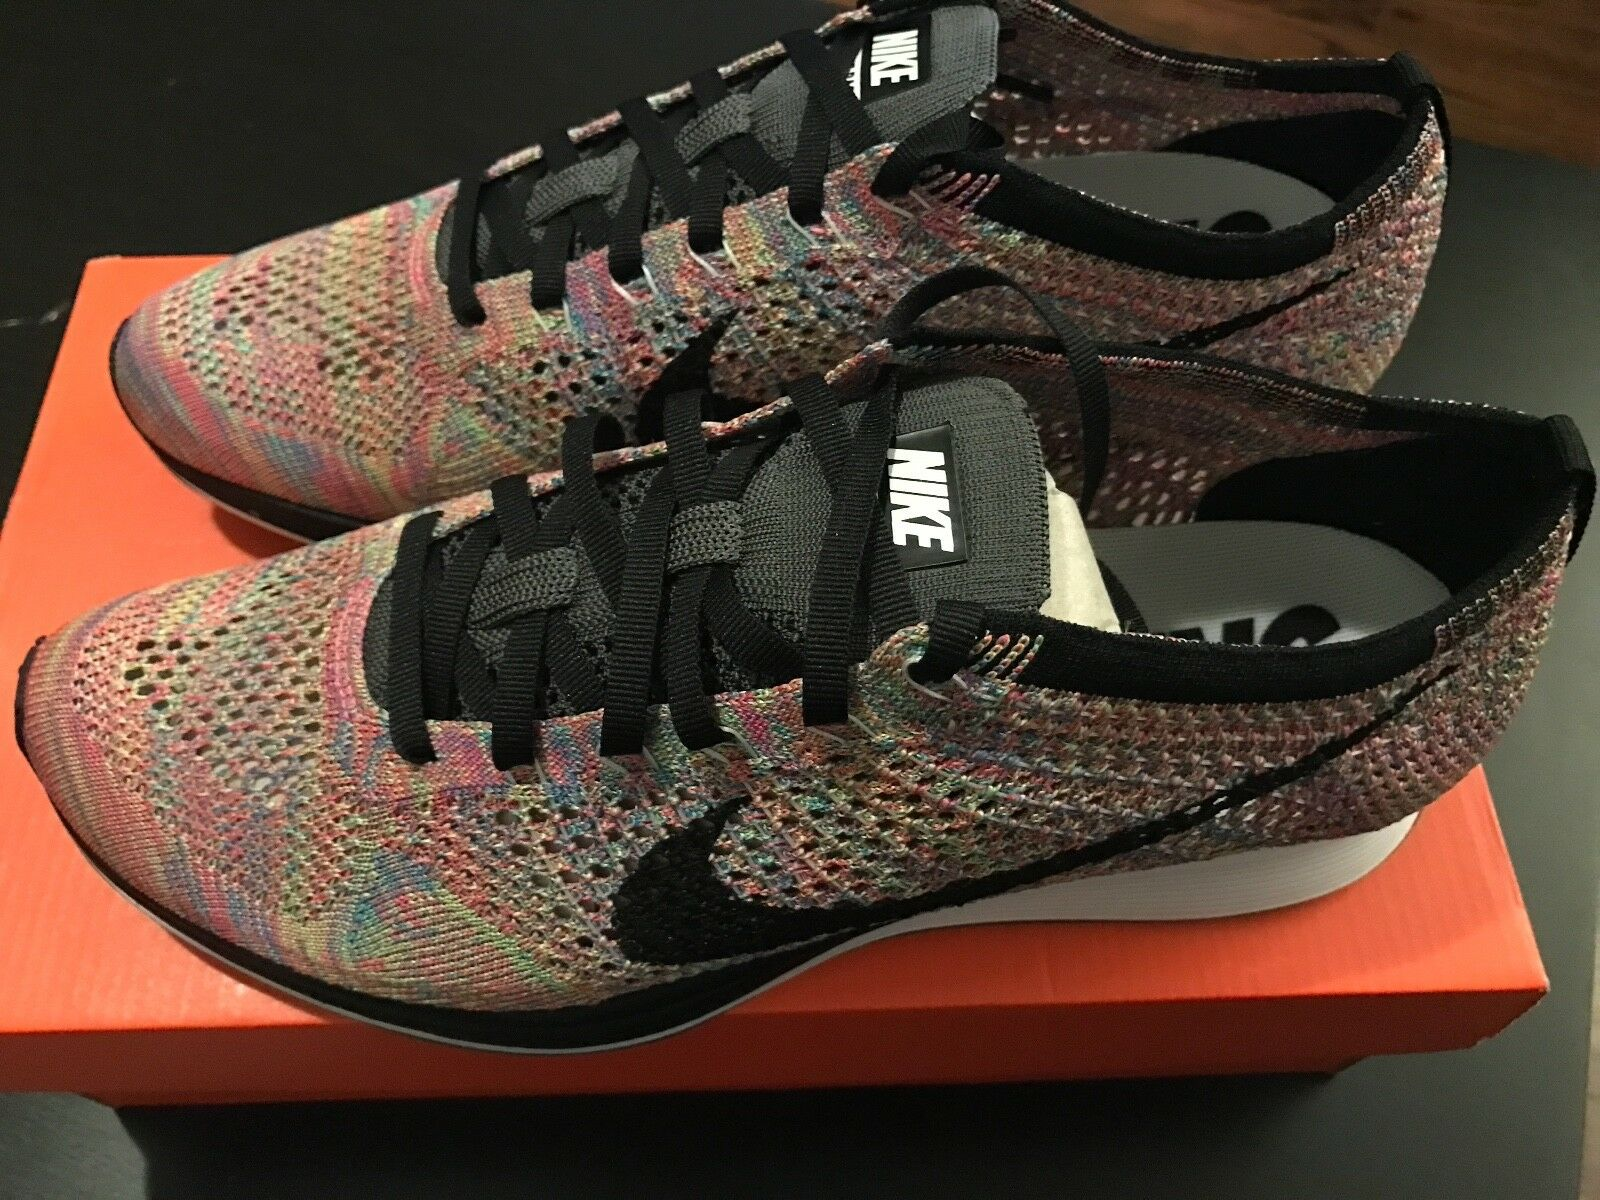 New - Nike Flyknit Multicolor Yellow Rainbow Running Racer 2.0 - Men Size 9.5